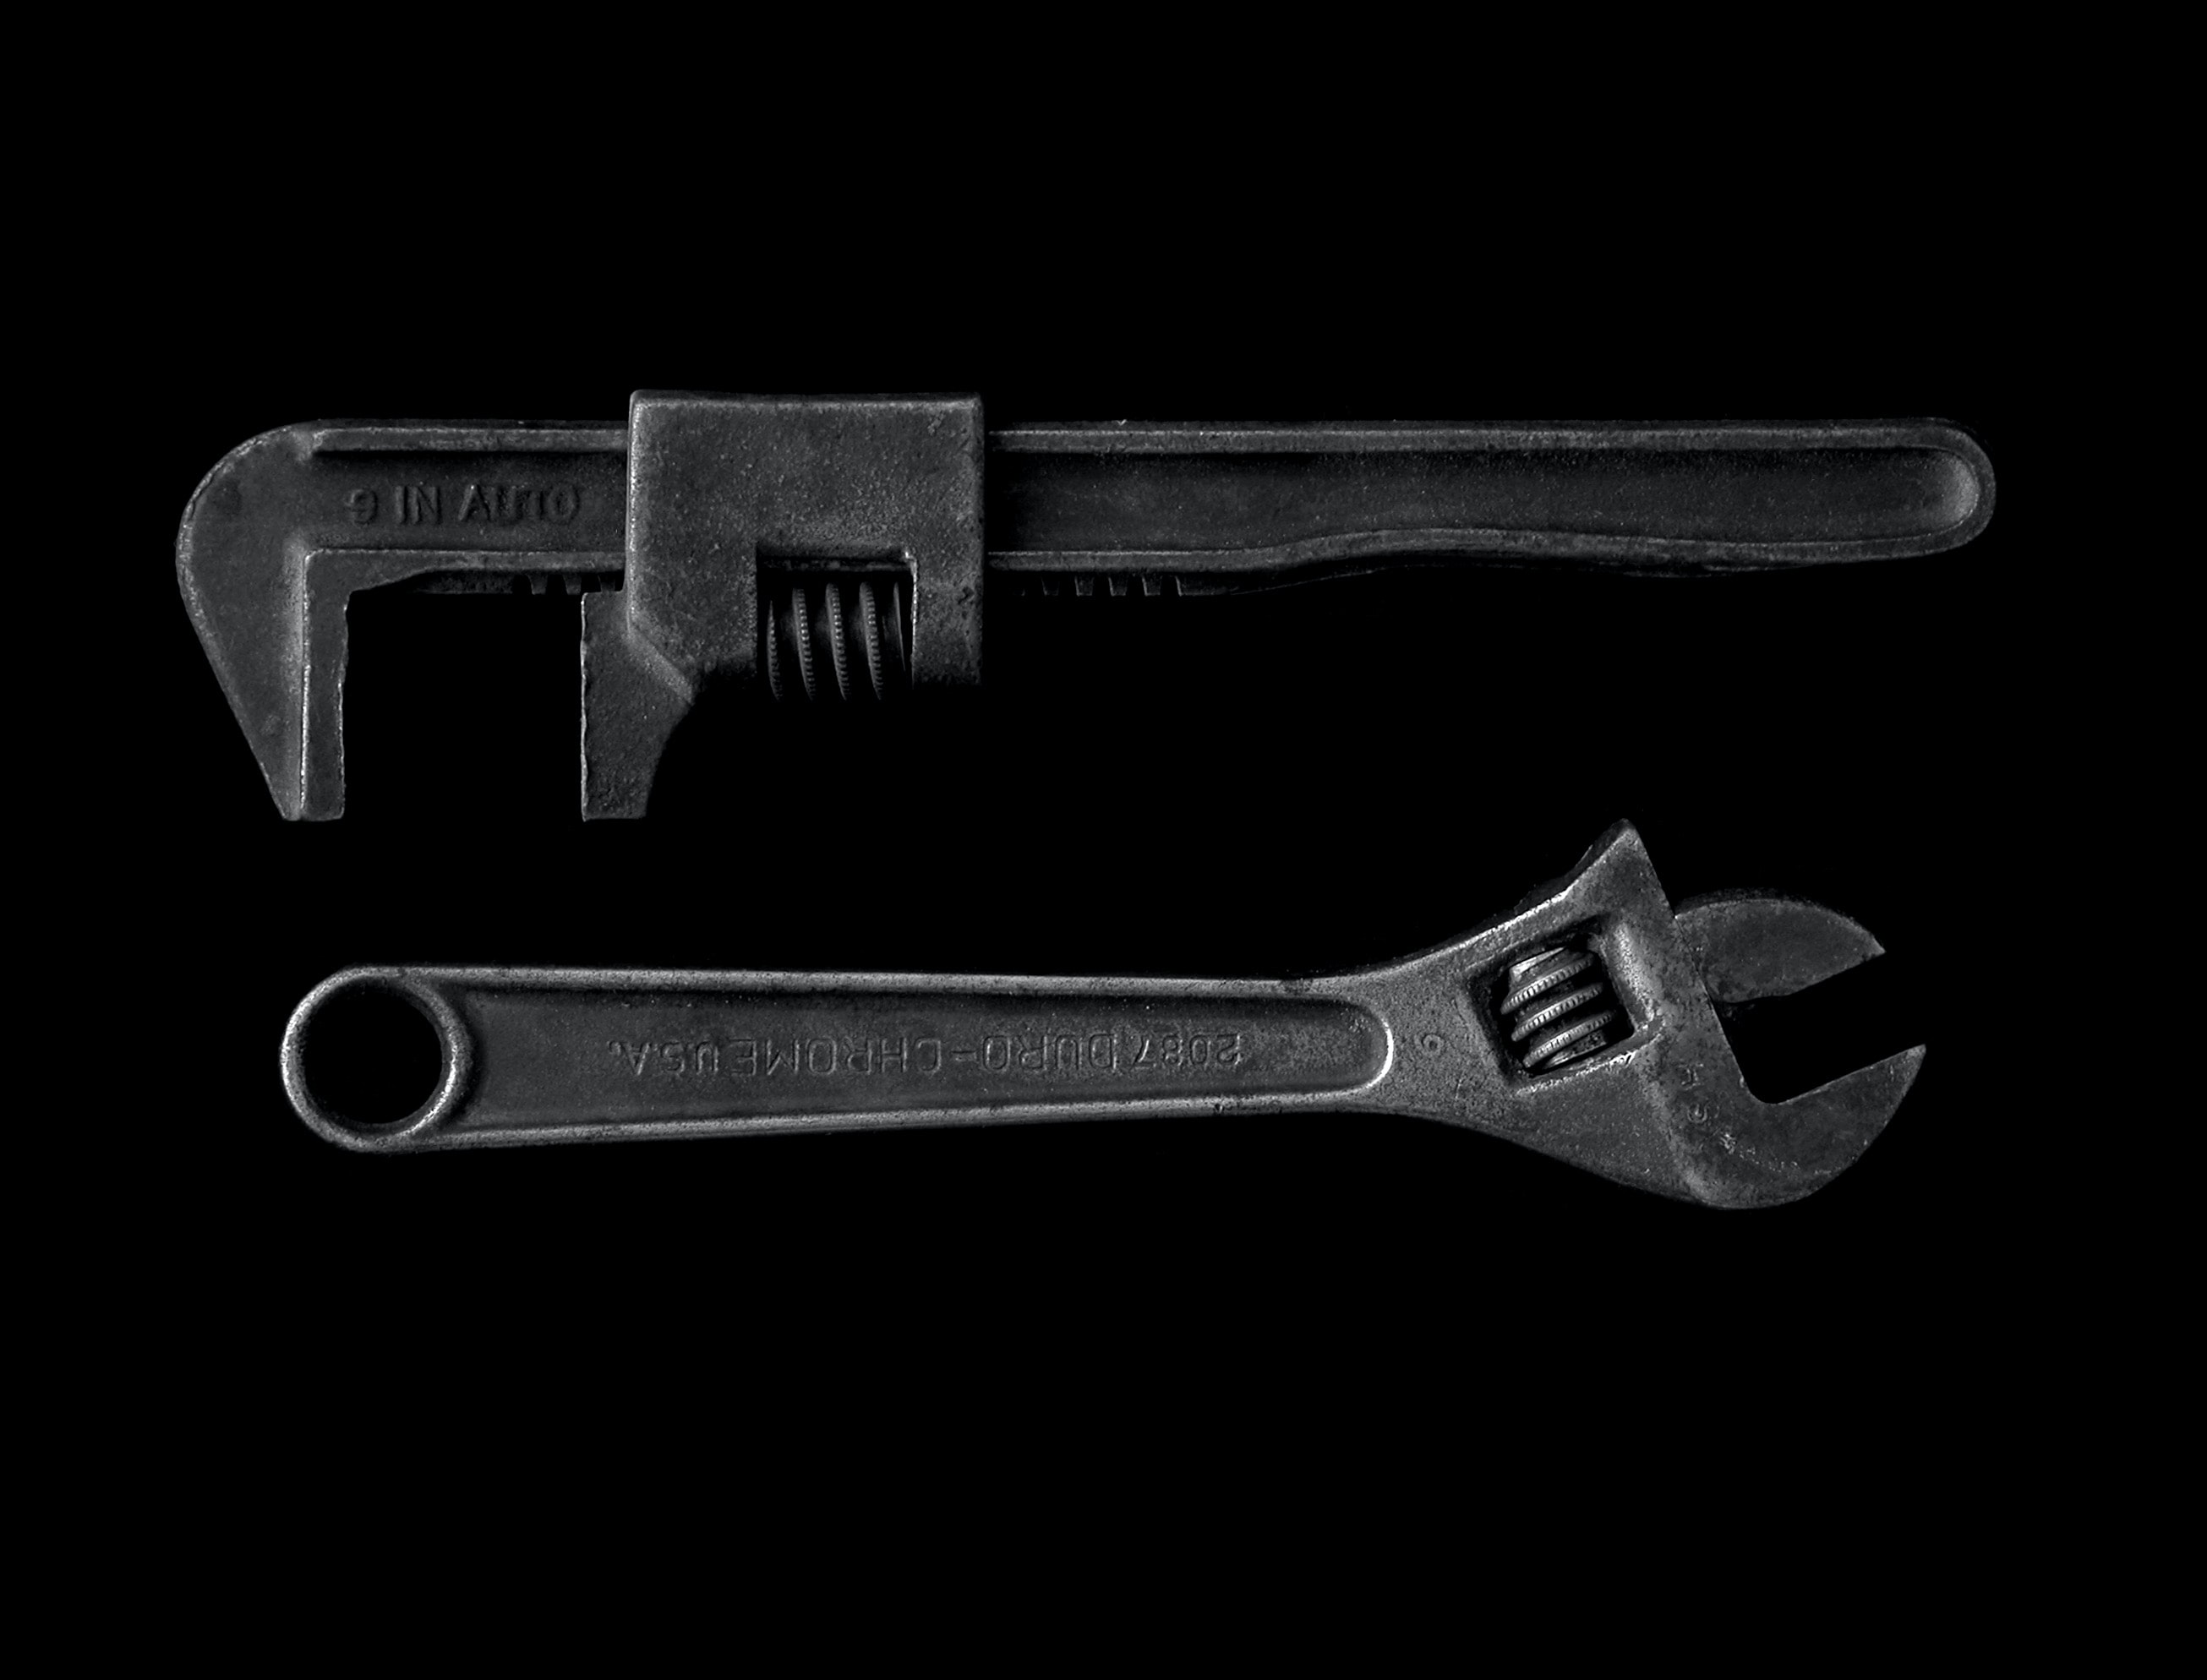 gray adjustable wrench and gray pipe wrench